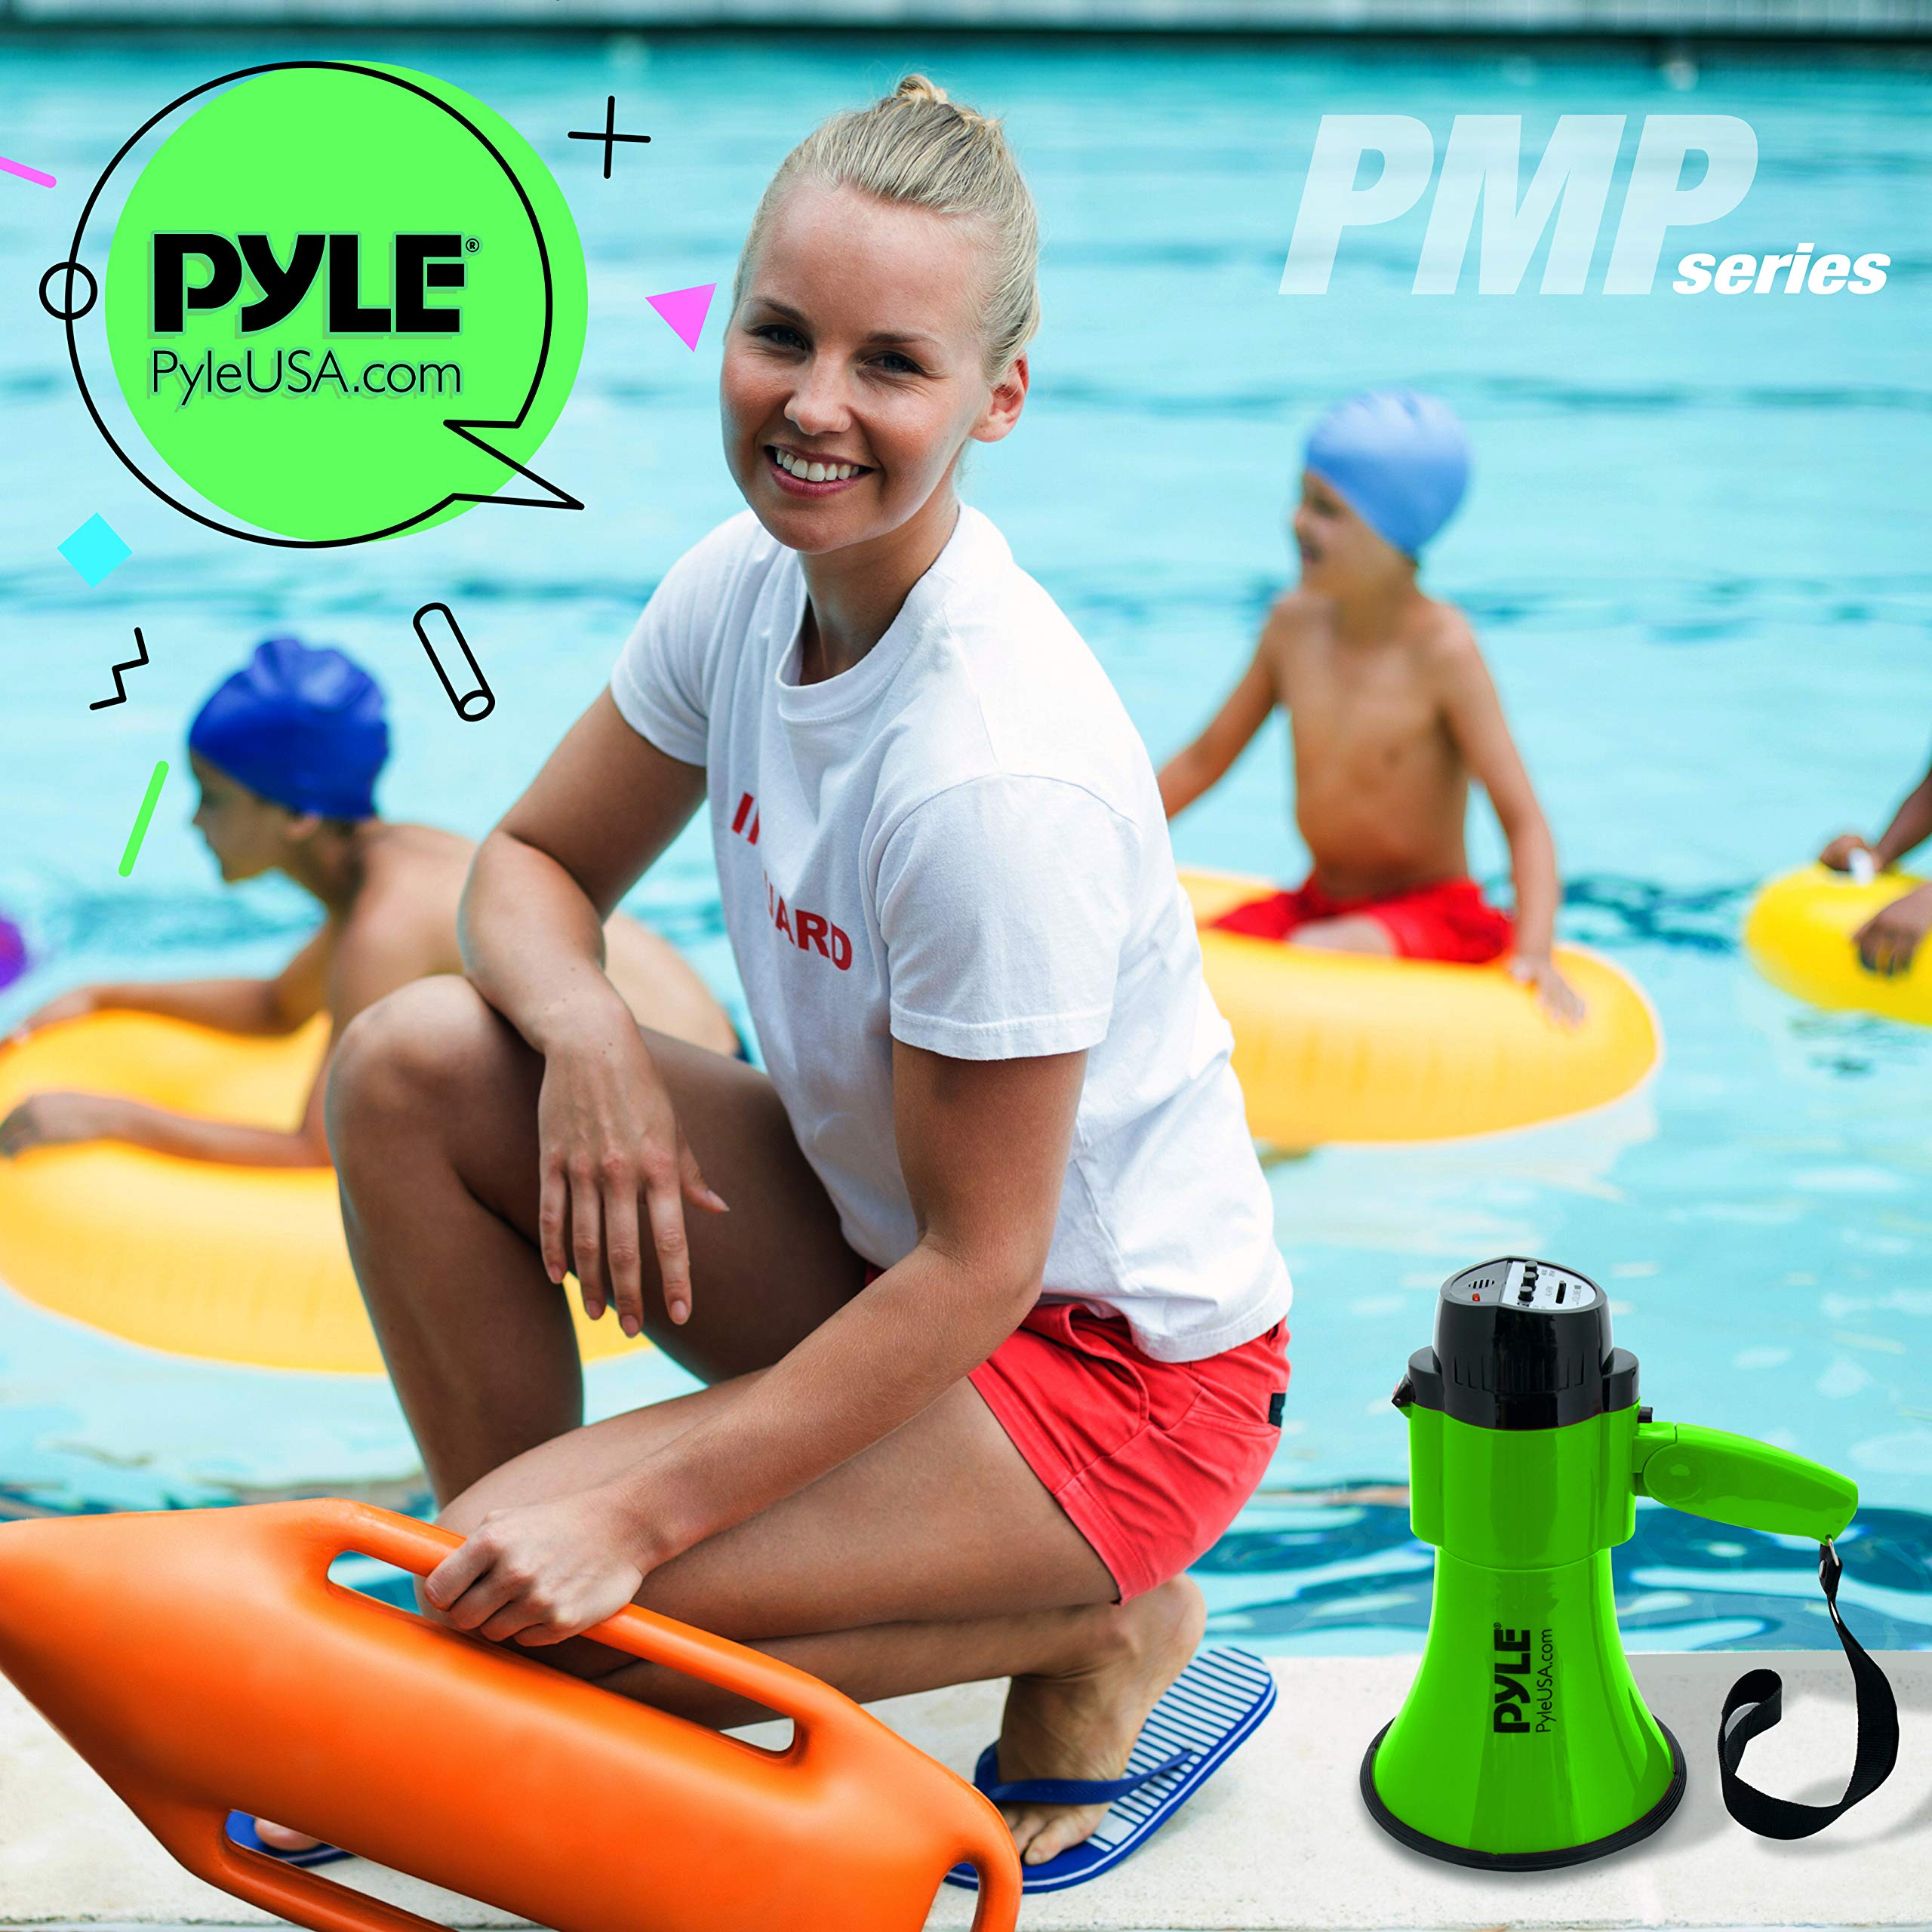 Portable Megaphone Speaker Siren Bullhorn - Compact and Battery Operated with 30 Watt Power, Microphone, 2 Modes, PA Sound and Foldable Handle for Cheerleading and Police Use - Pyle PMP32GR (Green) by Pyle (Image #7)